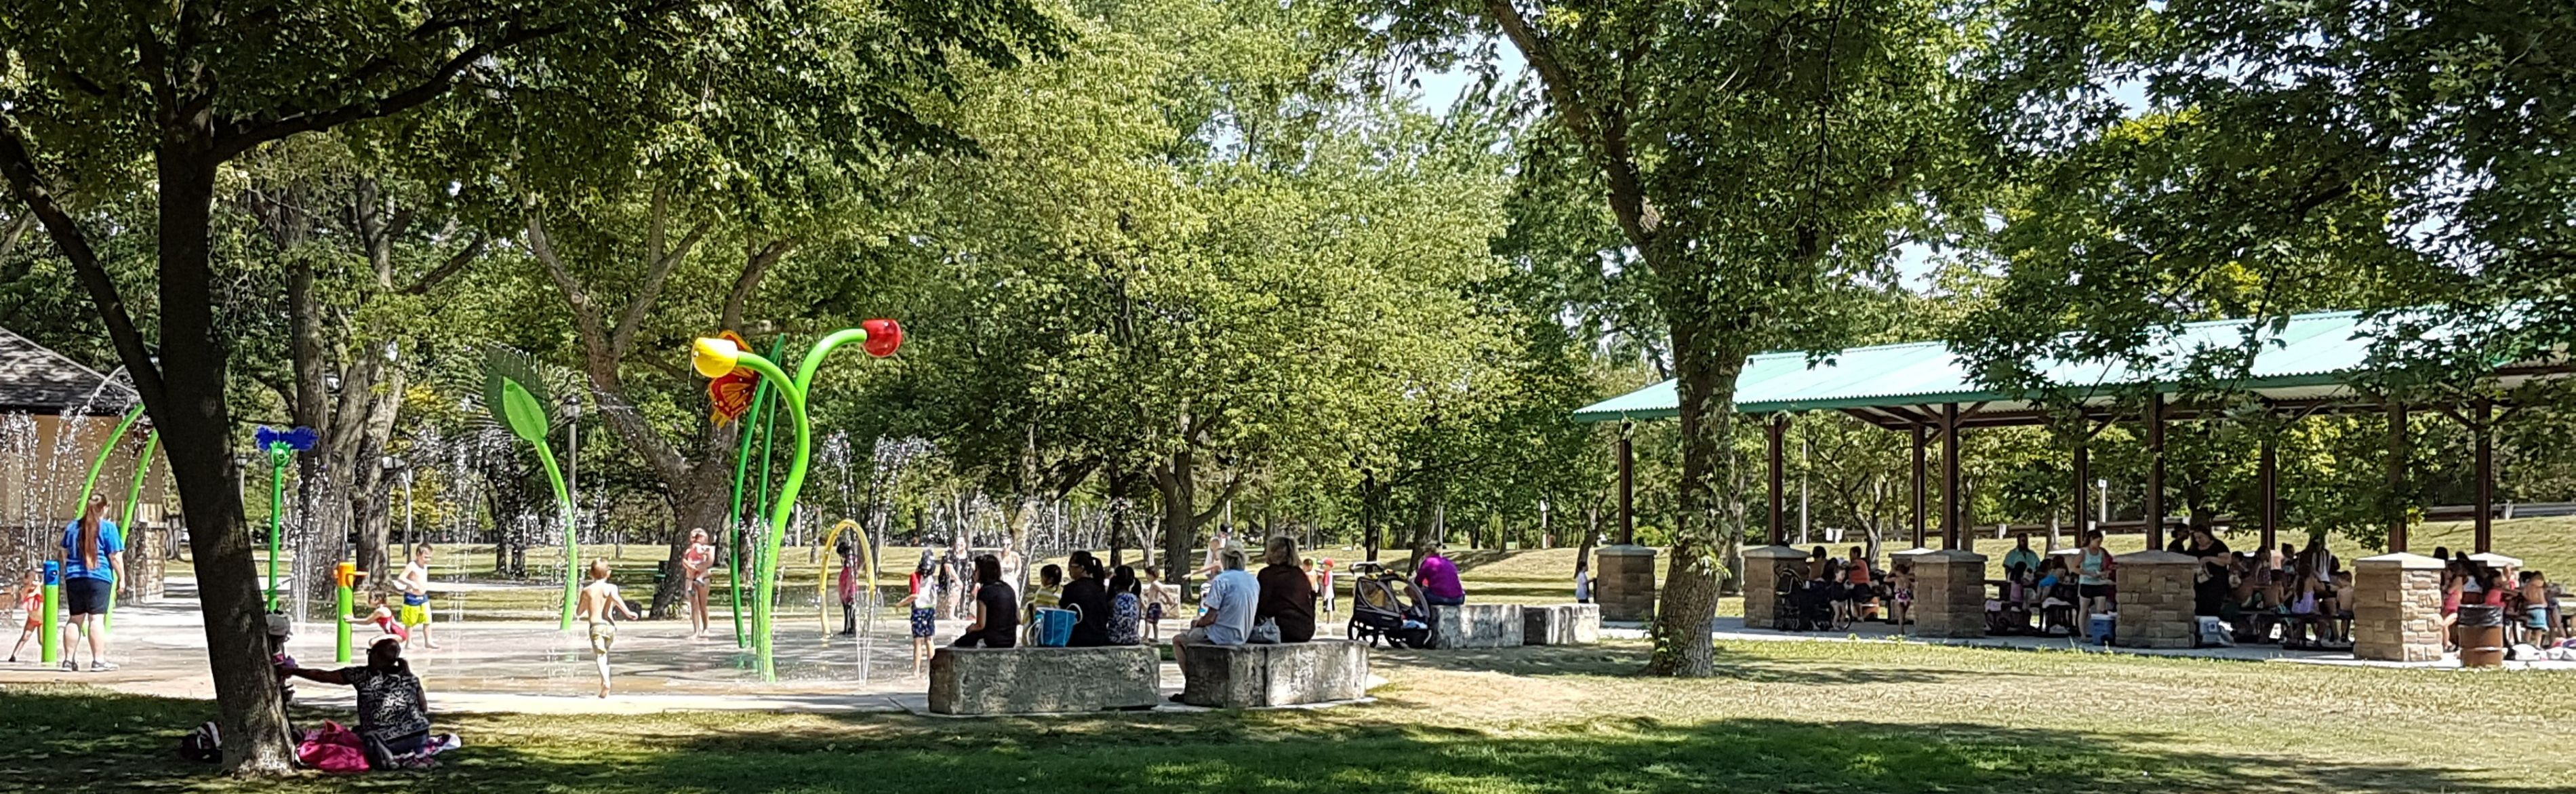 Photograph of a park with trees, shade structure  and splash pad in Windsor. Photo credit: City of Windsor